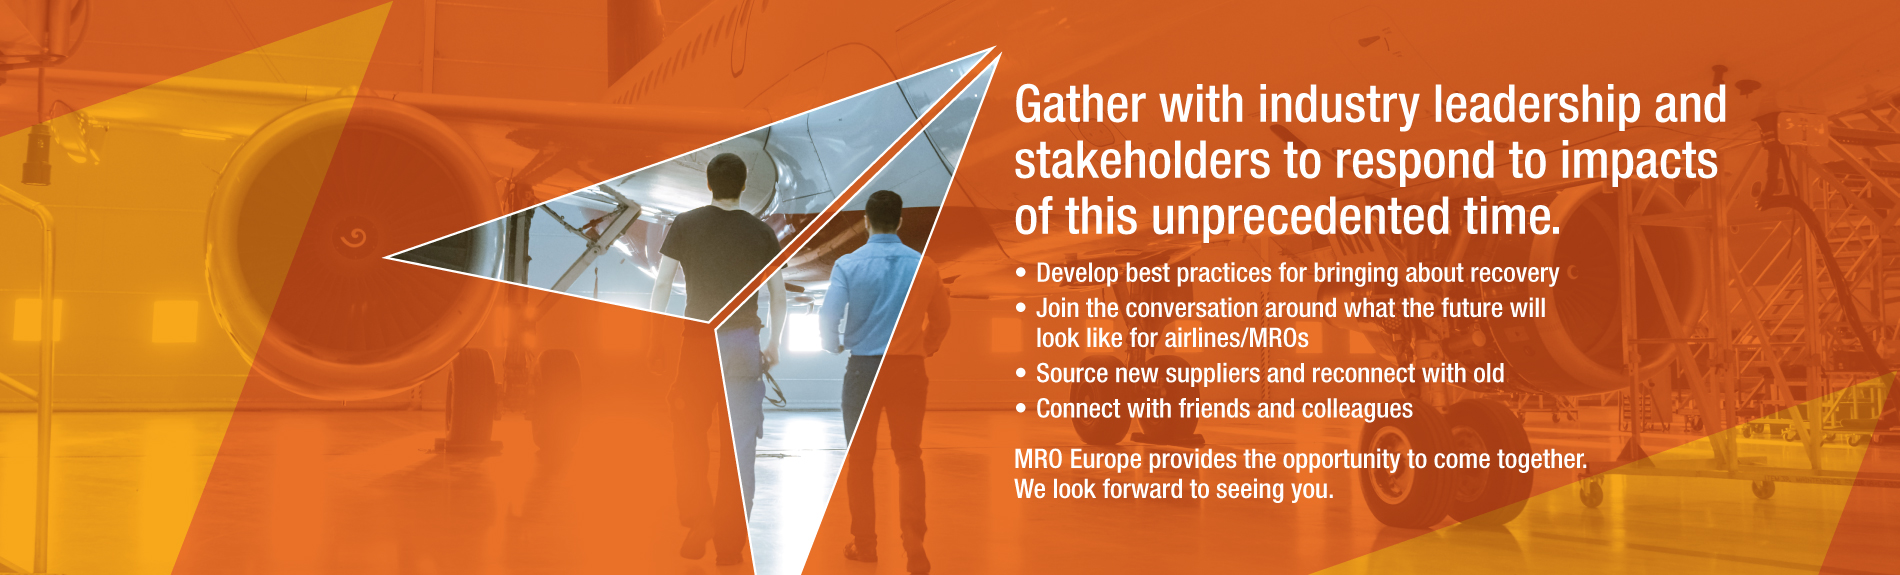 MRO Europe provides the opportunity to come together